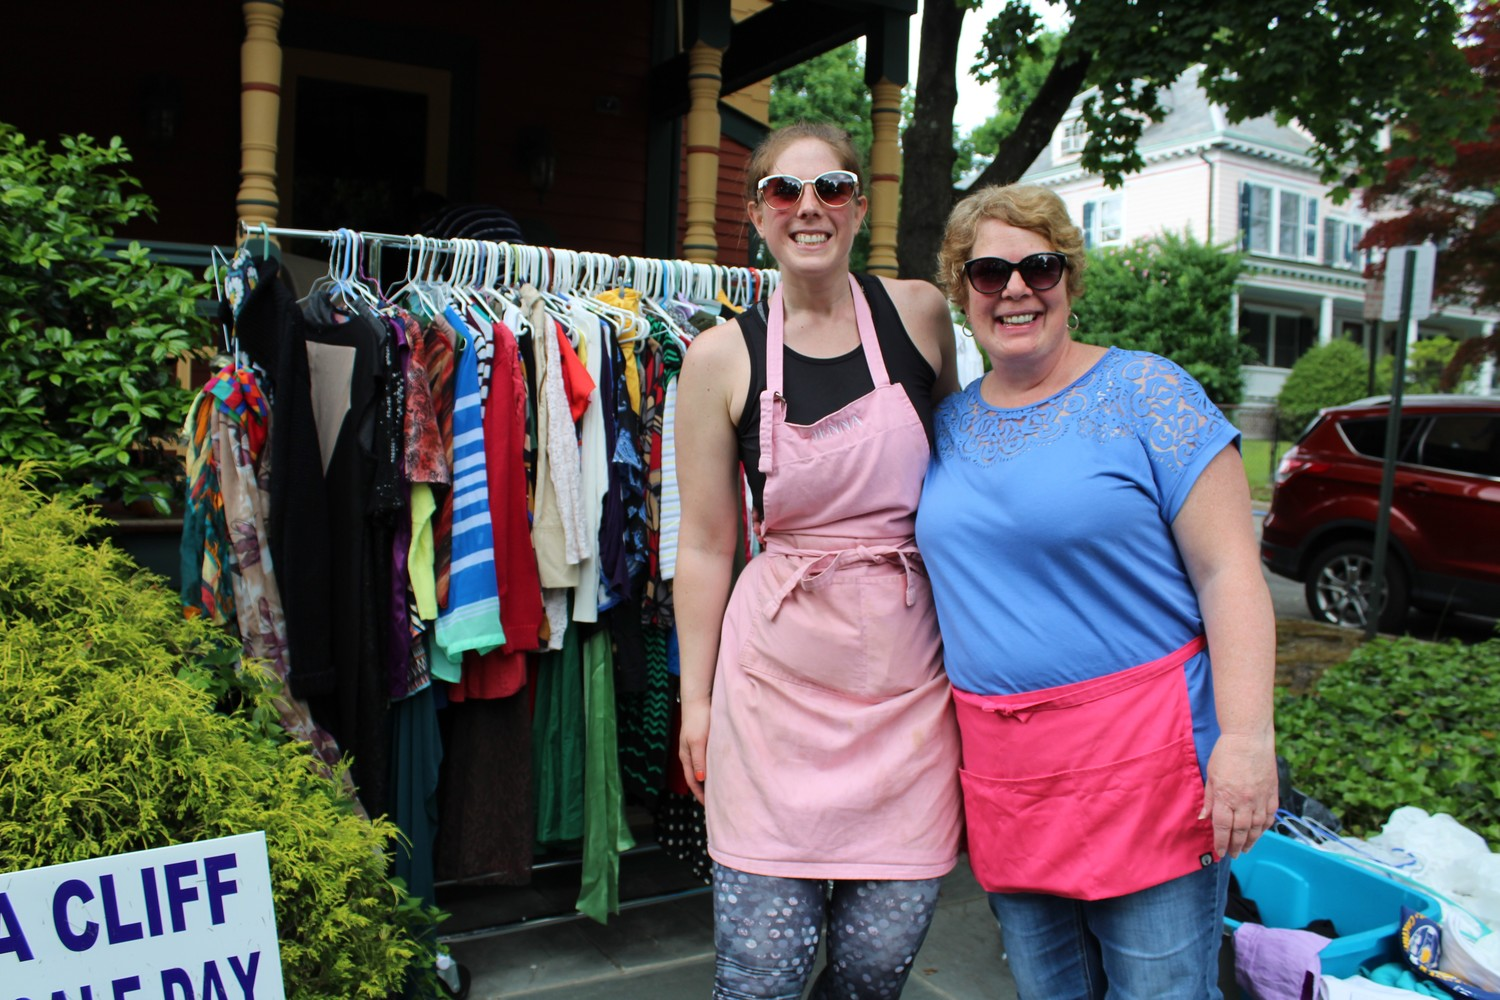 Jenna DiPietro of Sleepy Jean's Bake Co., left, and her mom, Nancy Fendt, had colorful racks of clothing lined up for shoppers.